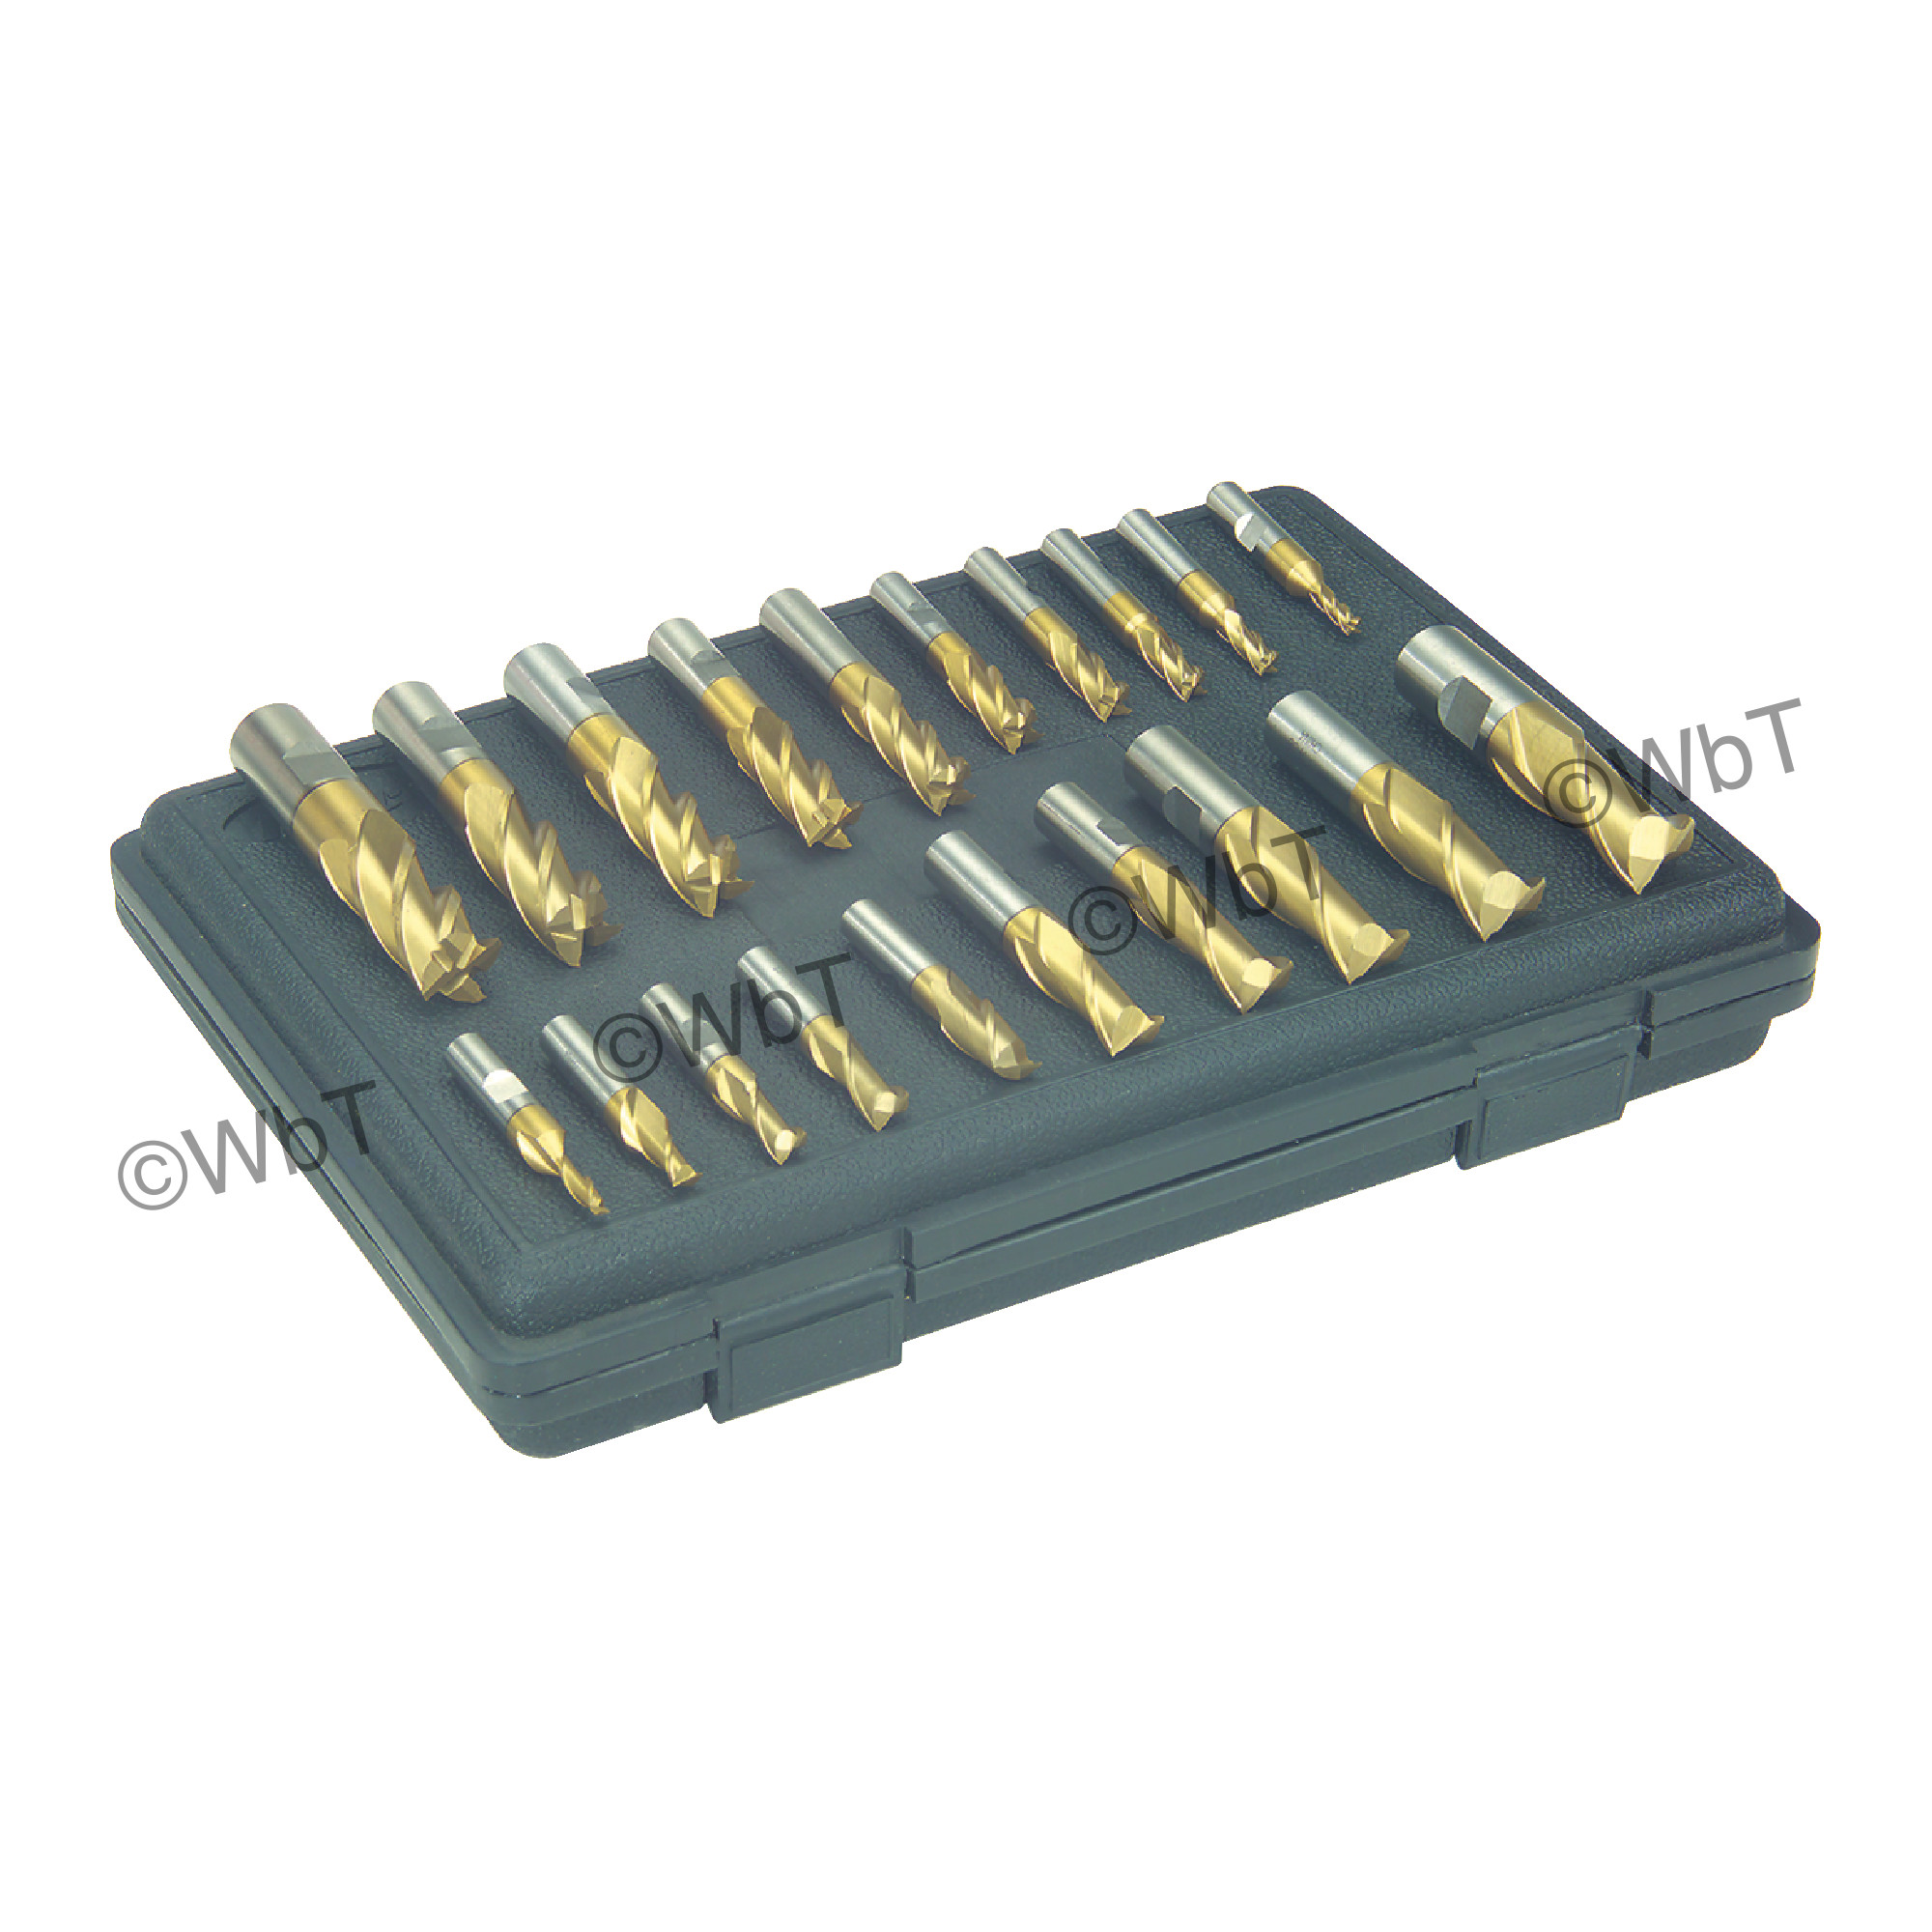 20 Piece High Speed Steel TiN Coated Single End Mill Set